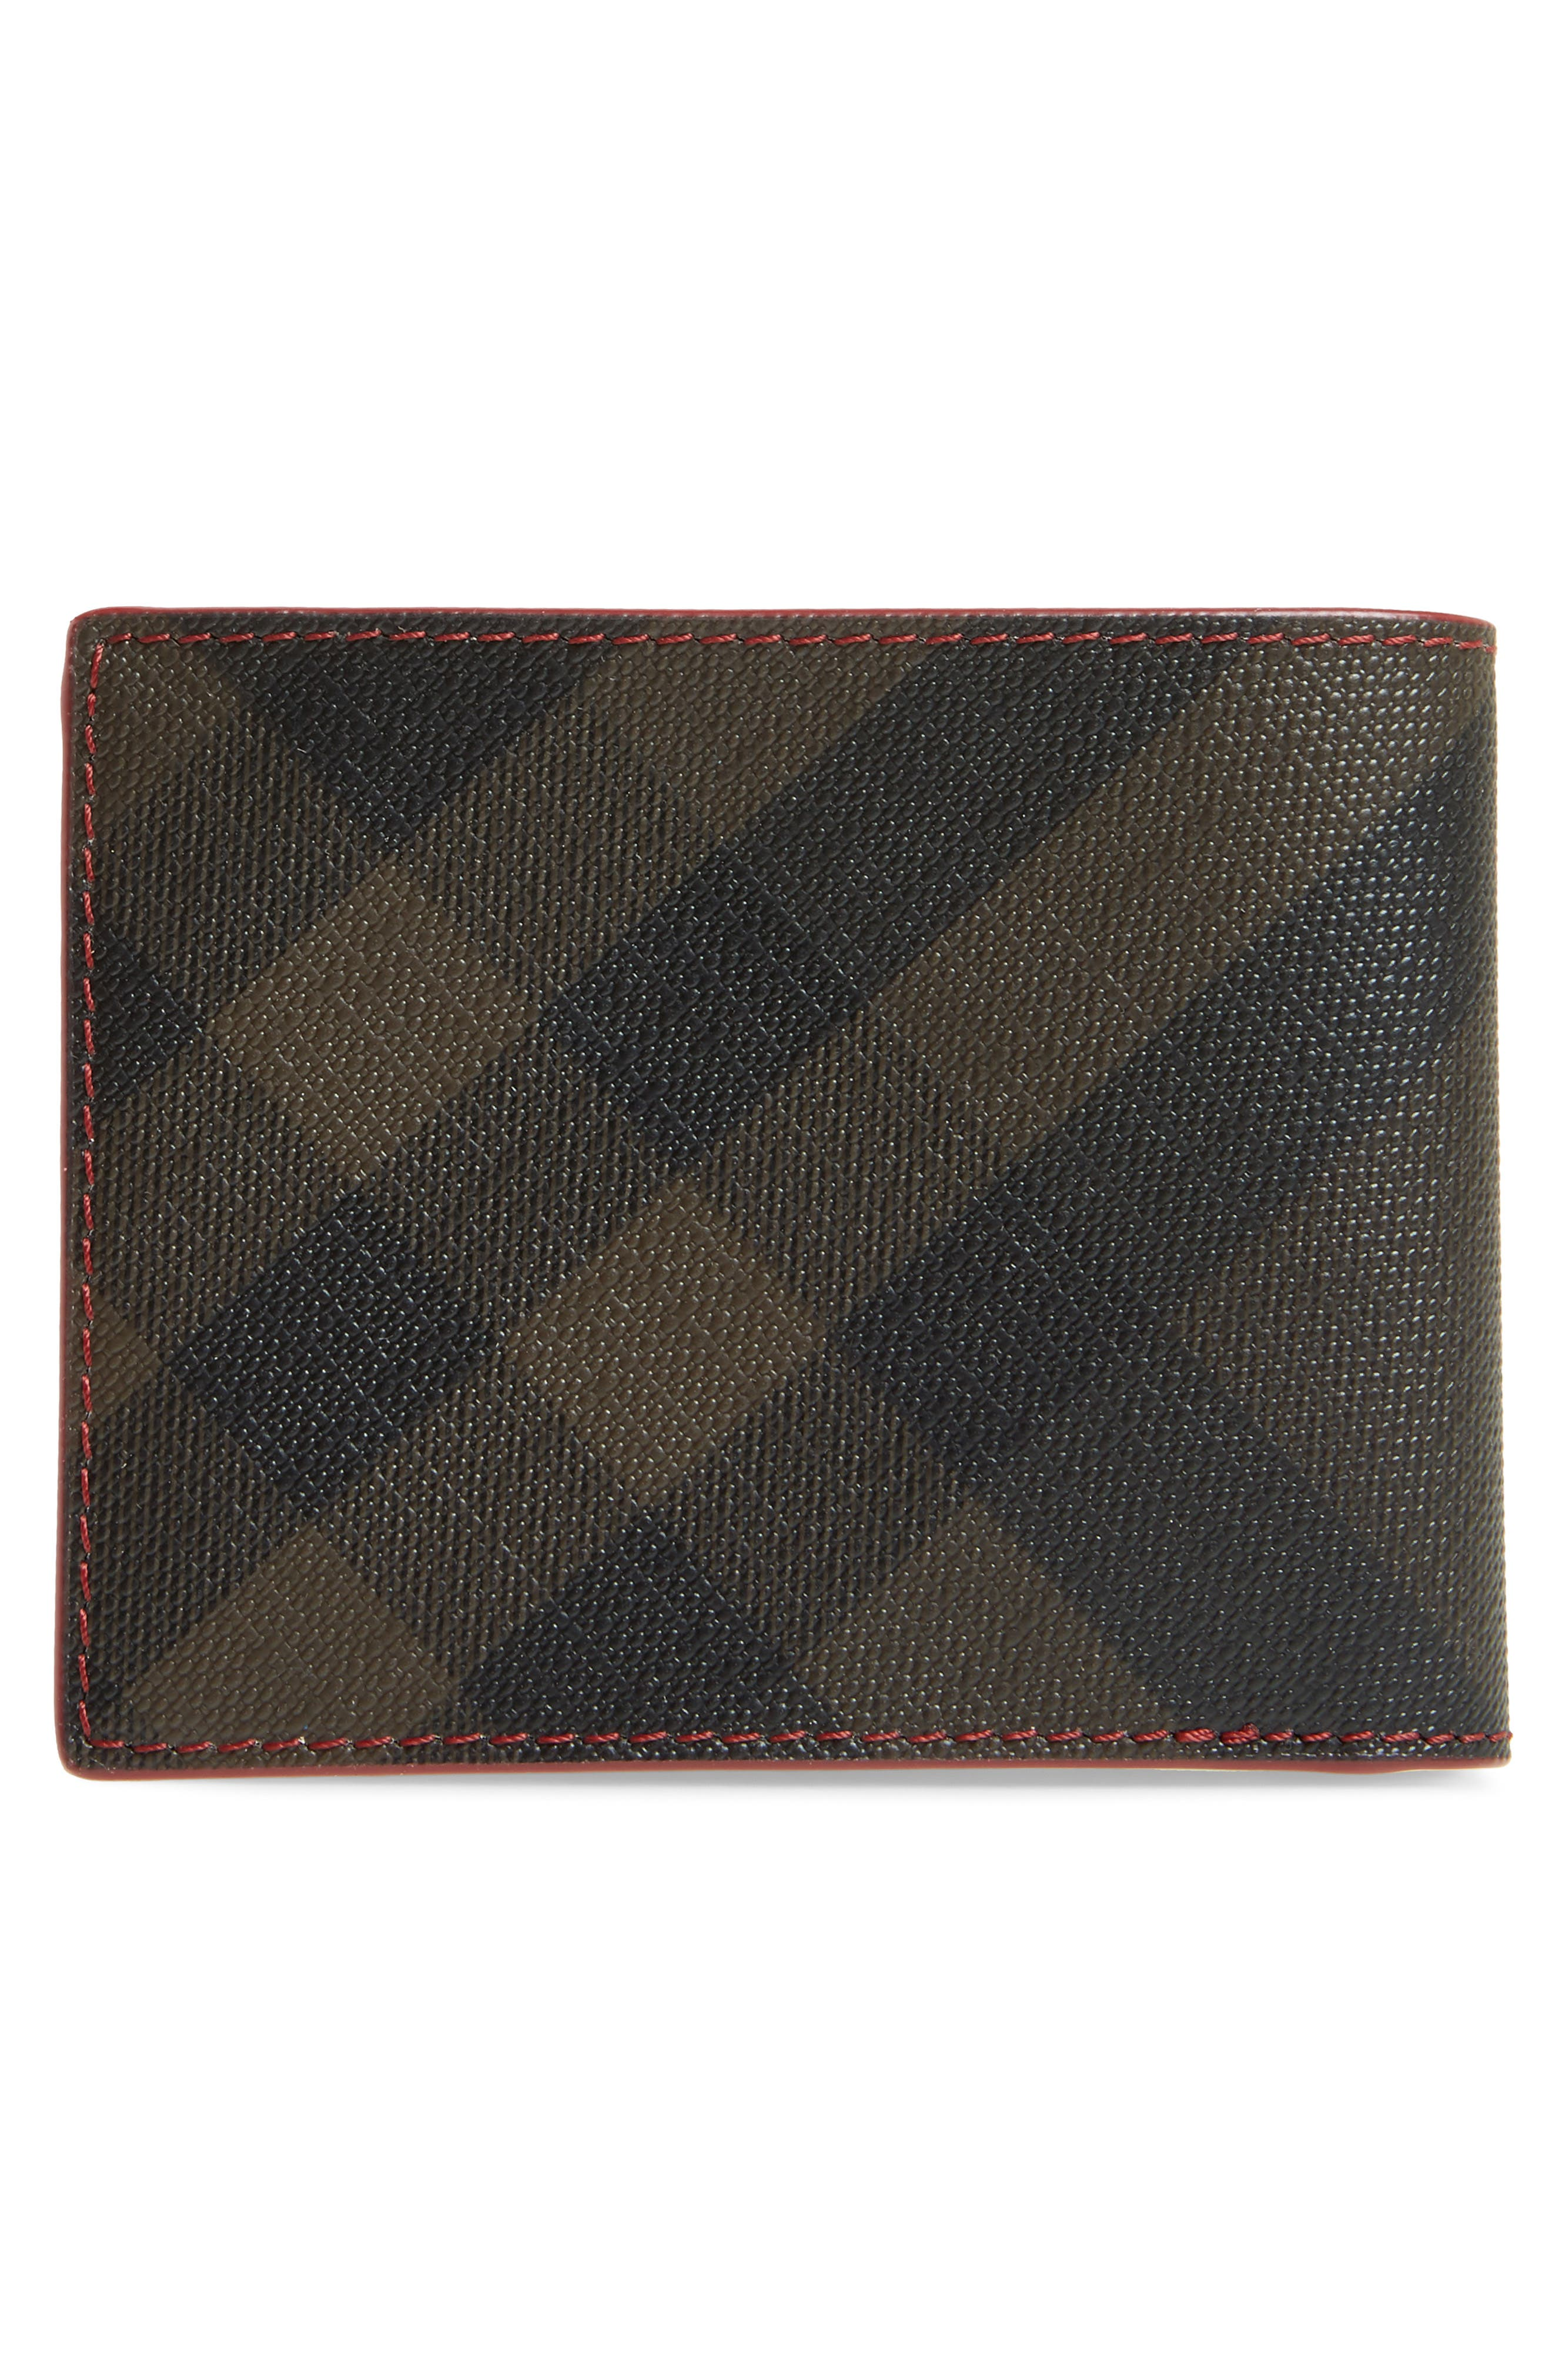 Check Faux Leather Wallet,                             Alternate thumbnail 3, color,                             207